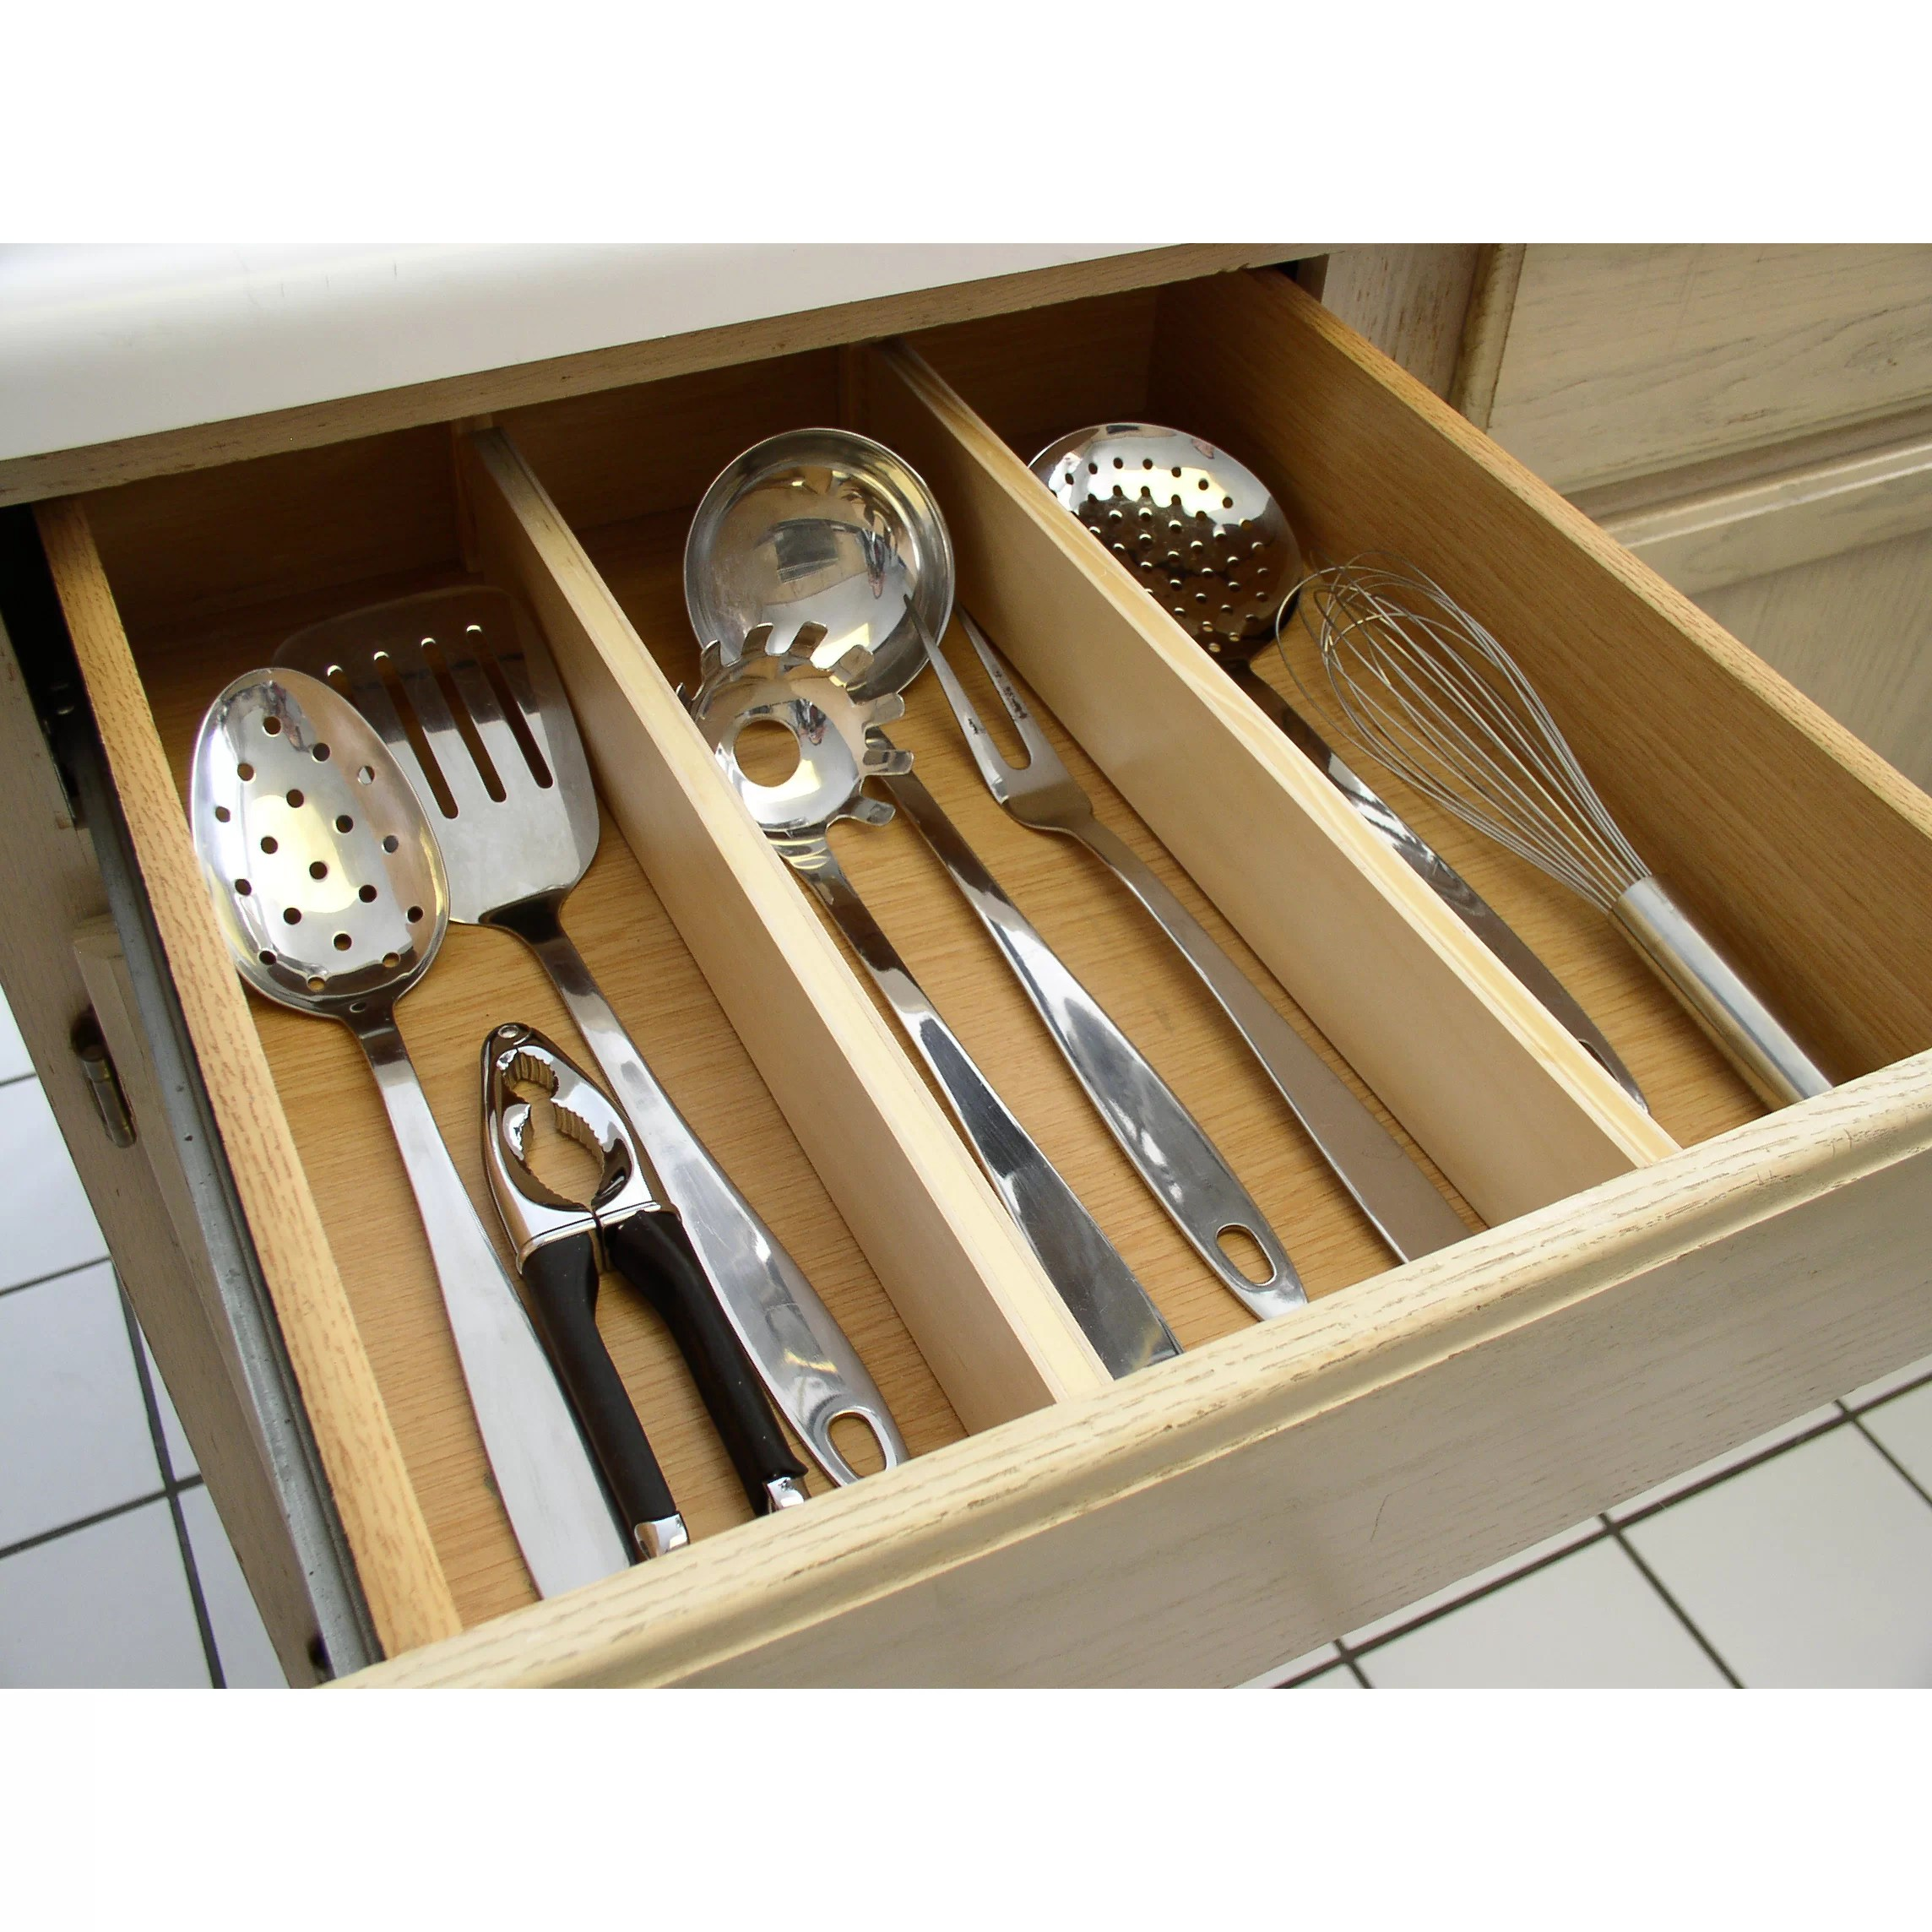 ybm home kitchen expandable compartment utensil drawer organizer home interiors simple effective kitchen drawer organizer